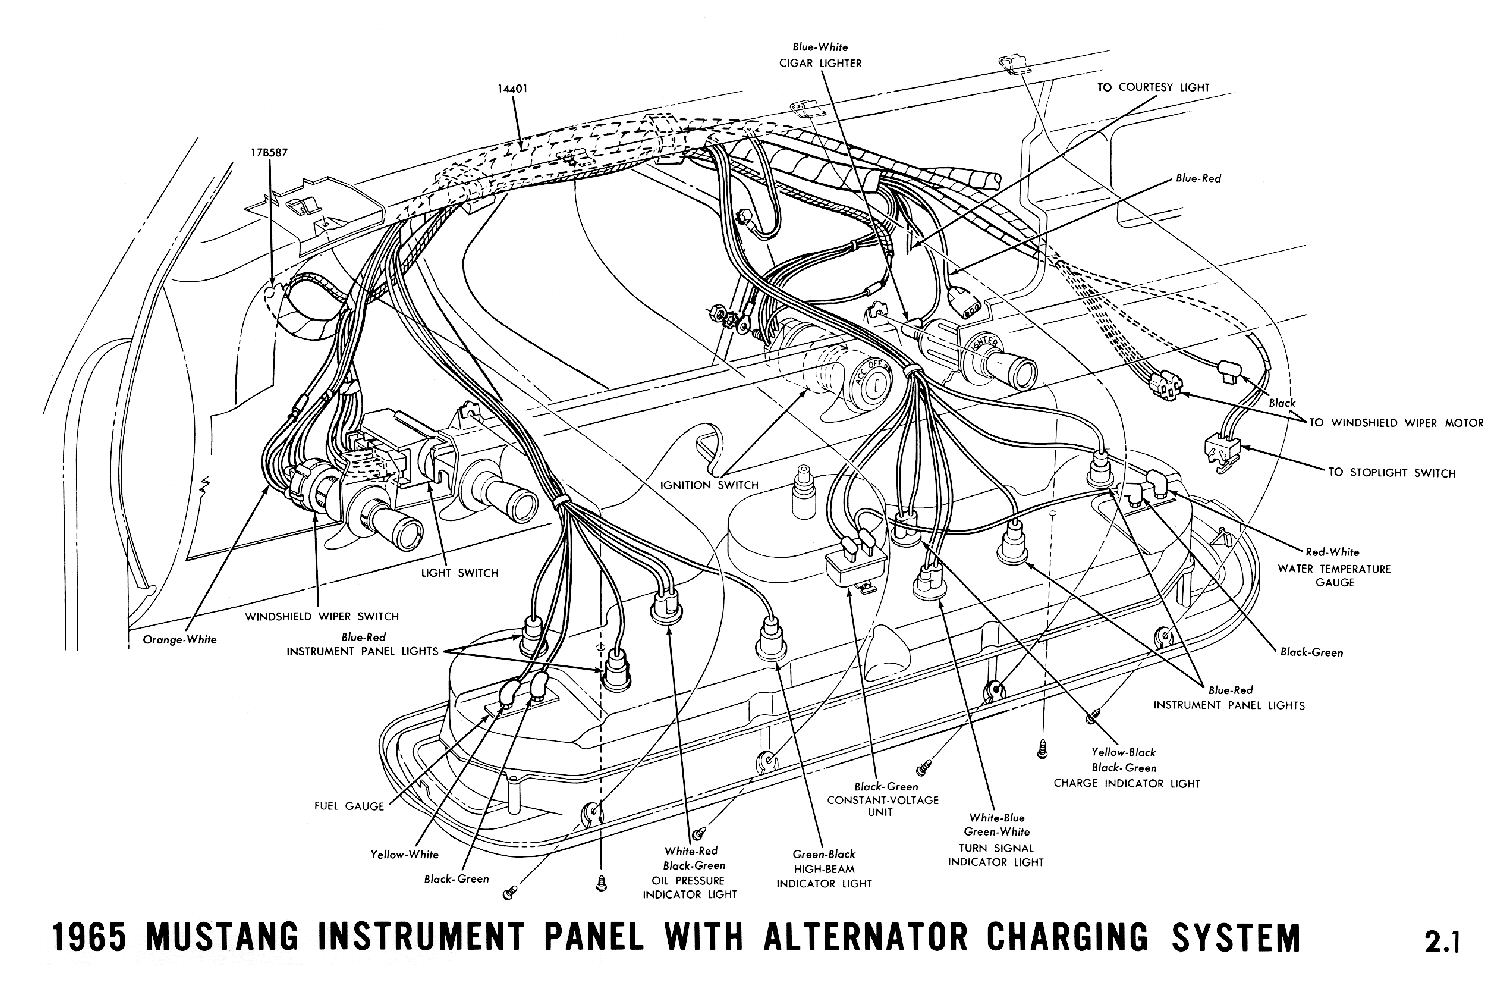 1968 ford mustang alternator wiring diagram wiring diagram rh vw19 vom winnenthal de 1966 ford bronco alternator wiring diagram